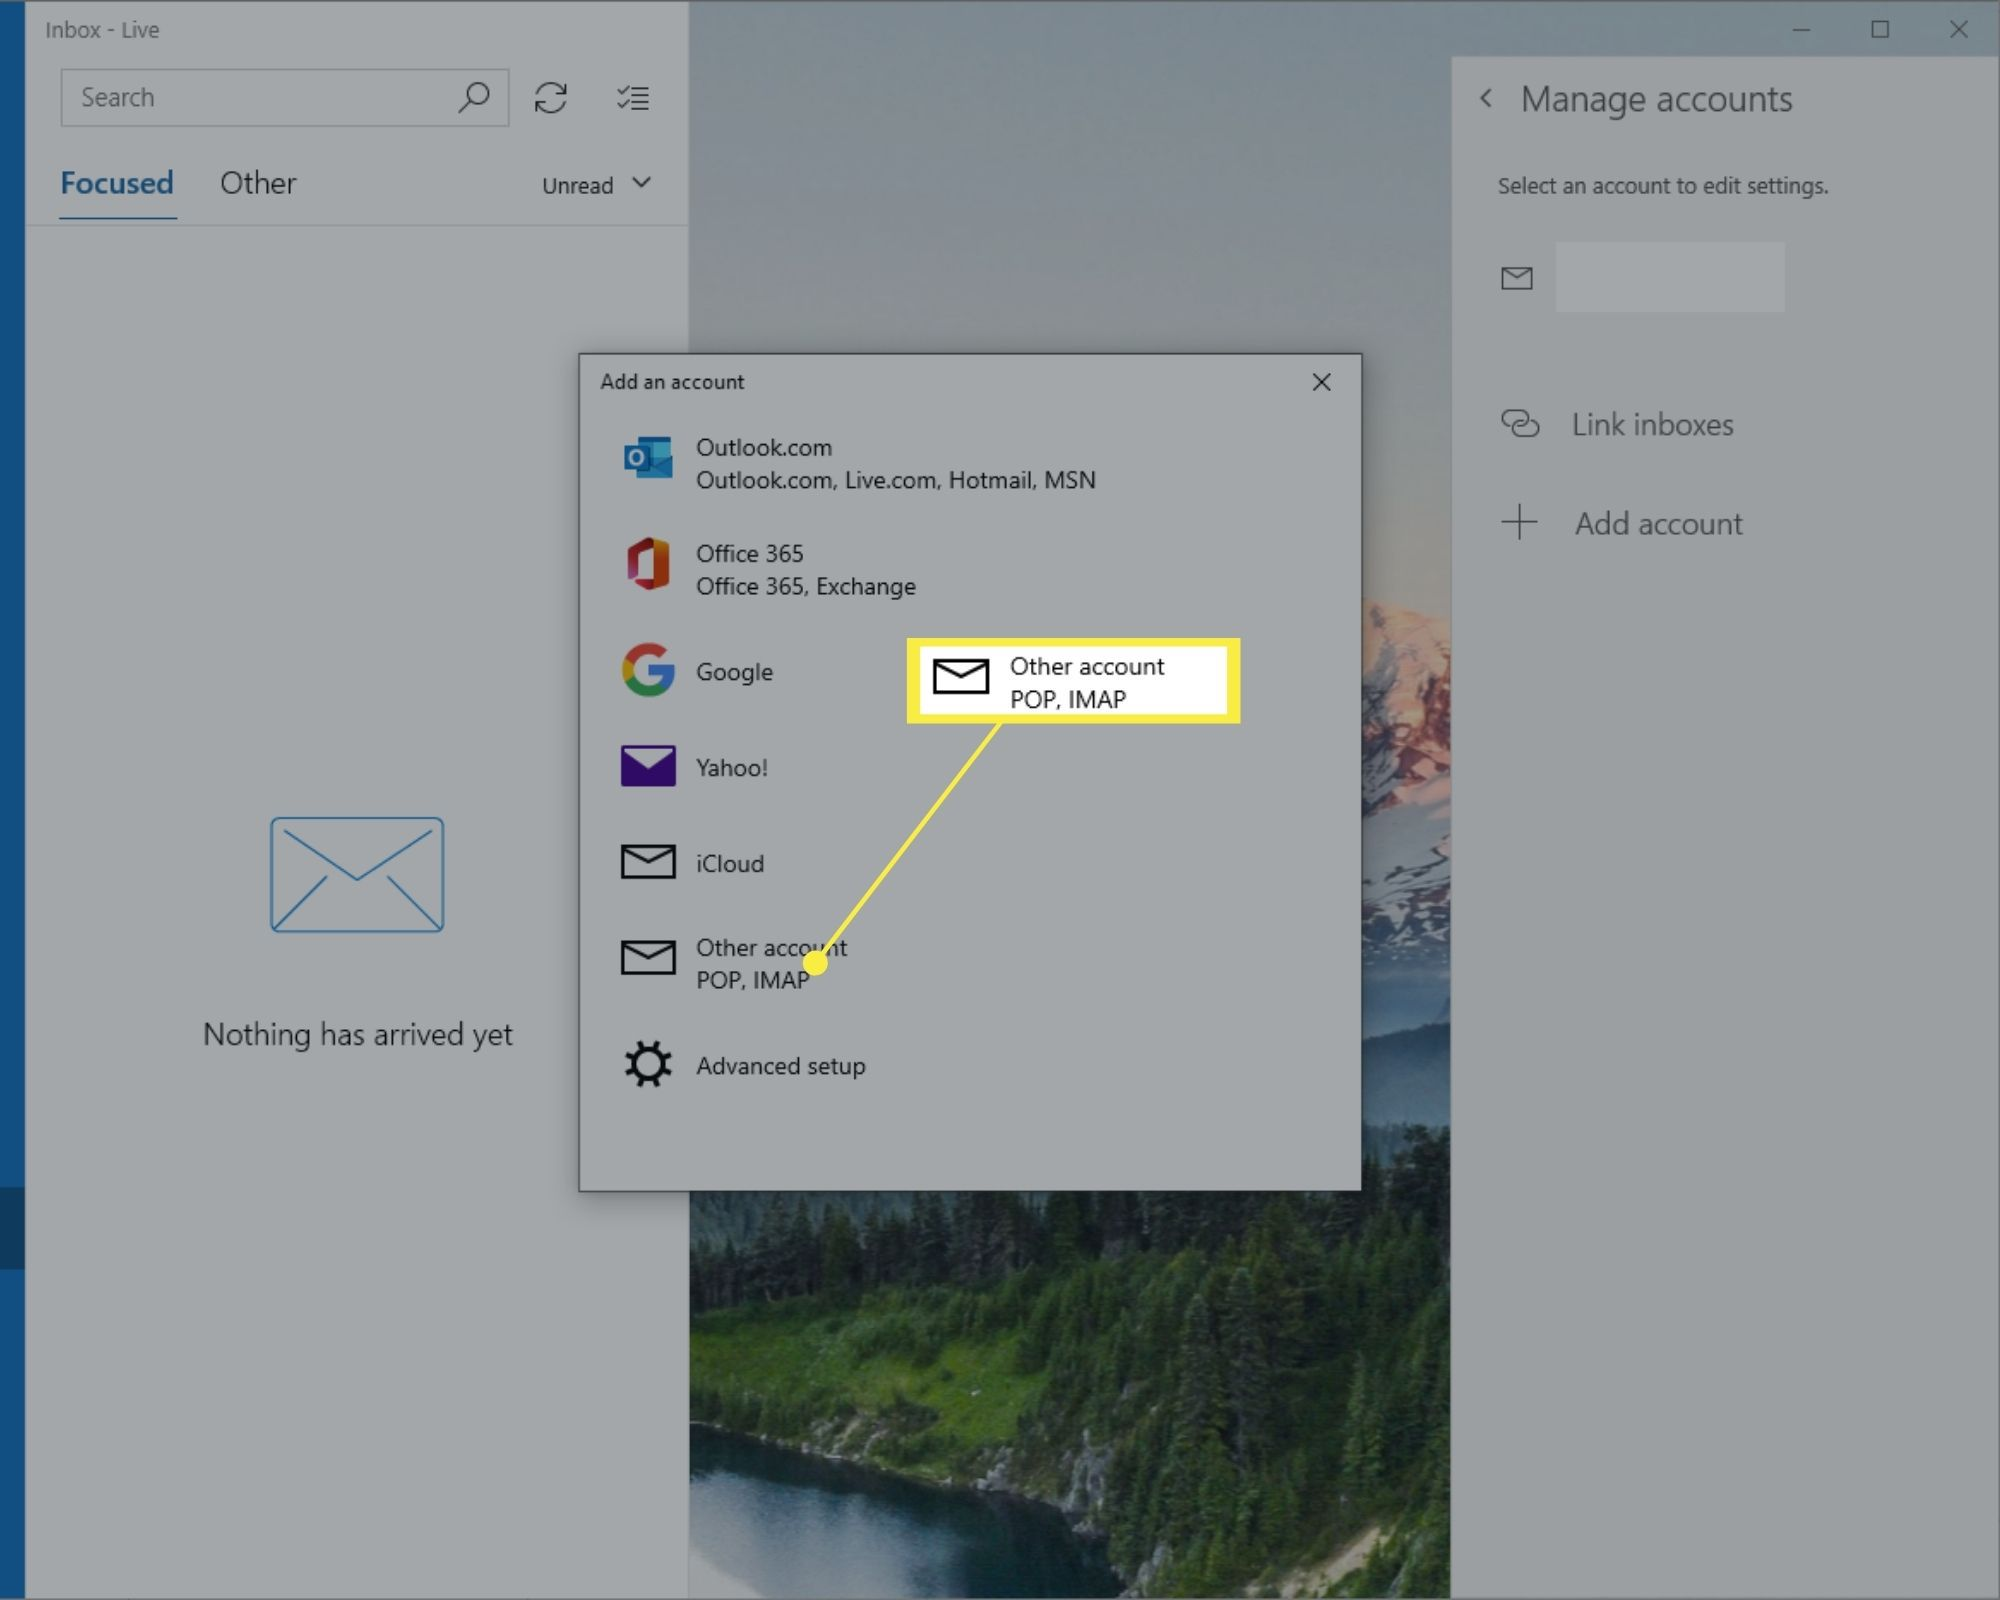 Other account option in Add an account window of Windows 10 Mail.